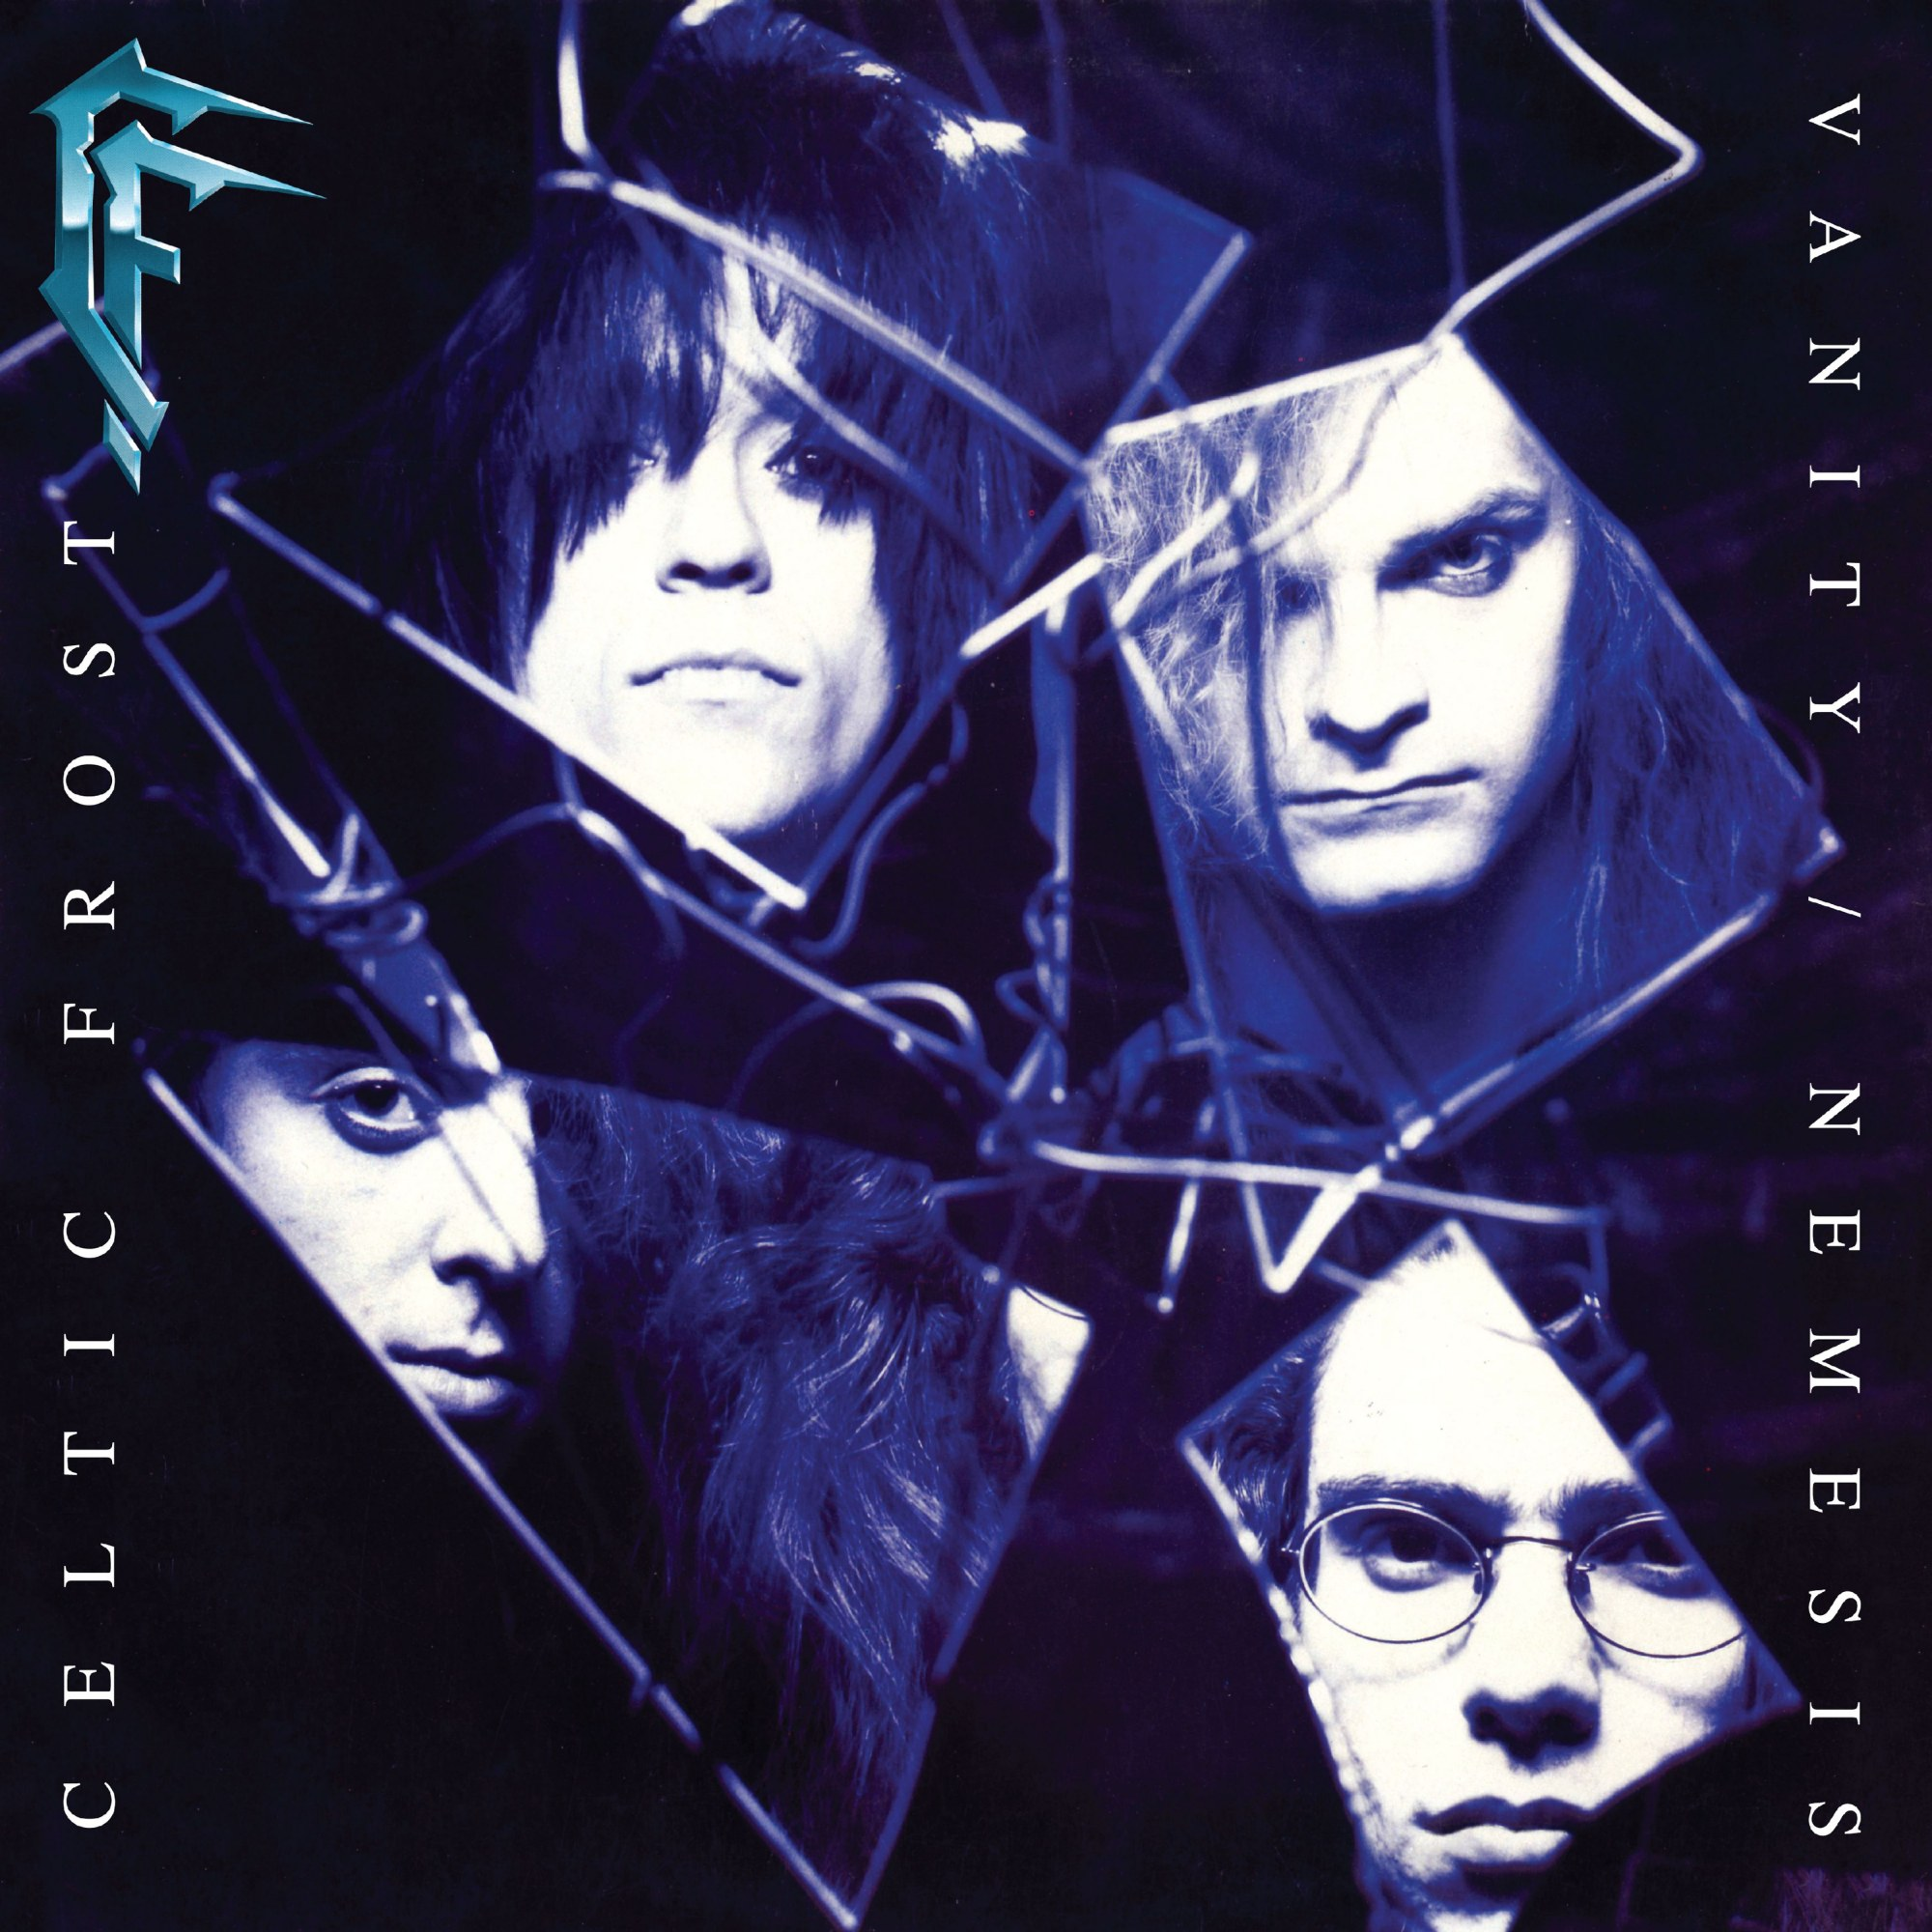 Review for Celtic Frost - Vanity / Nemesis